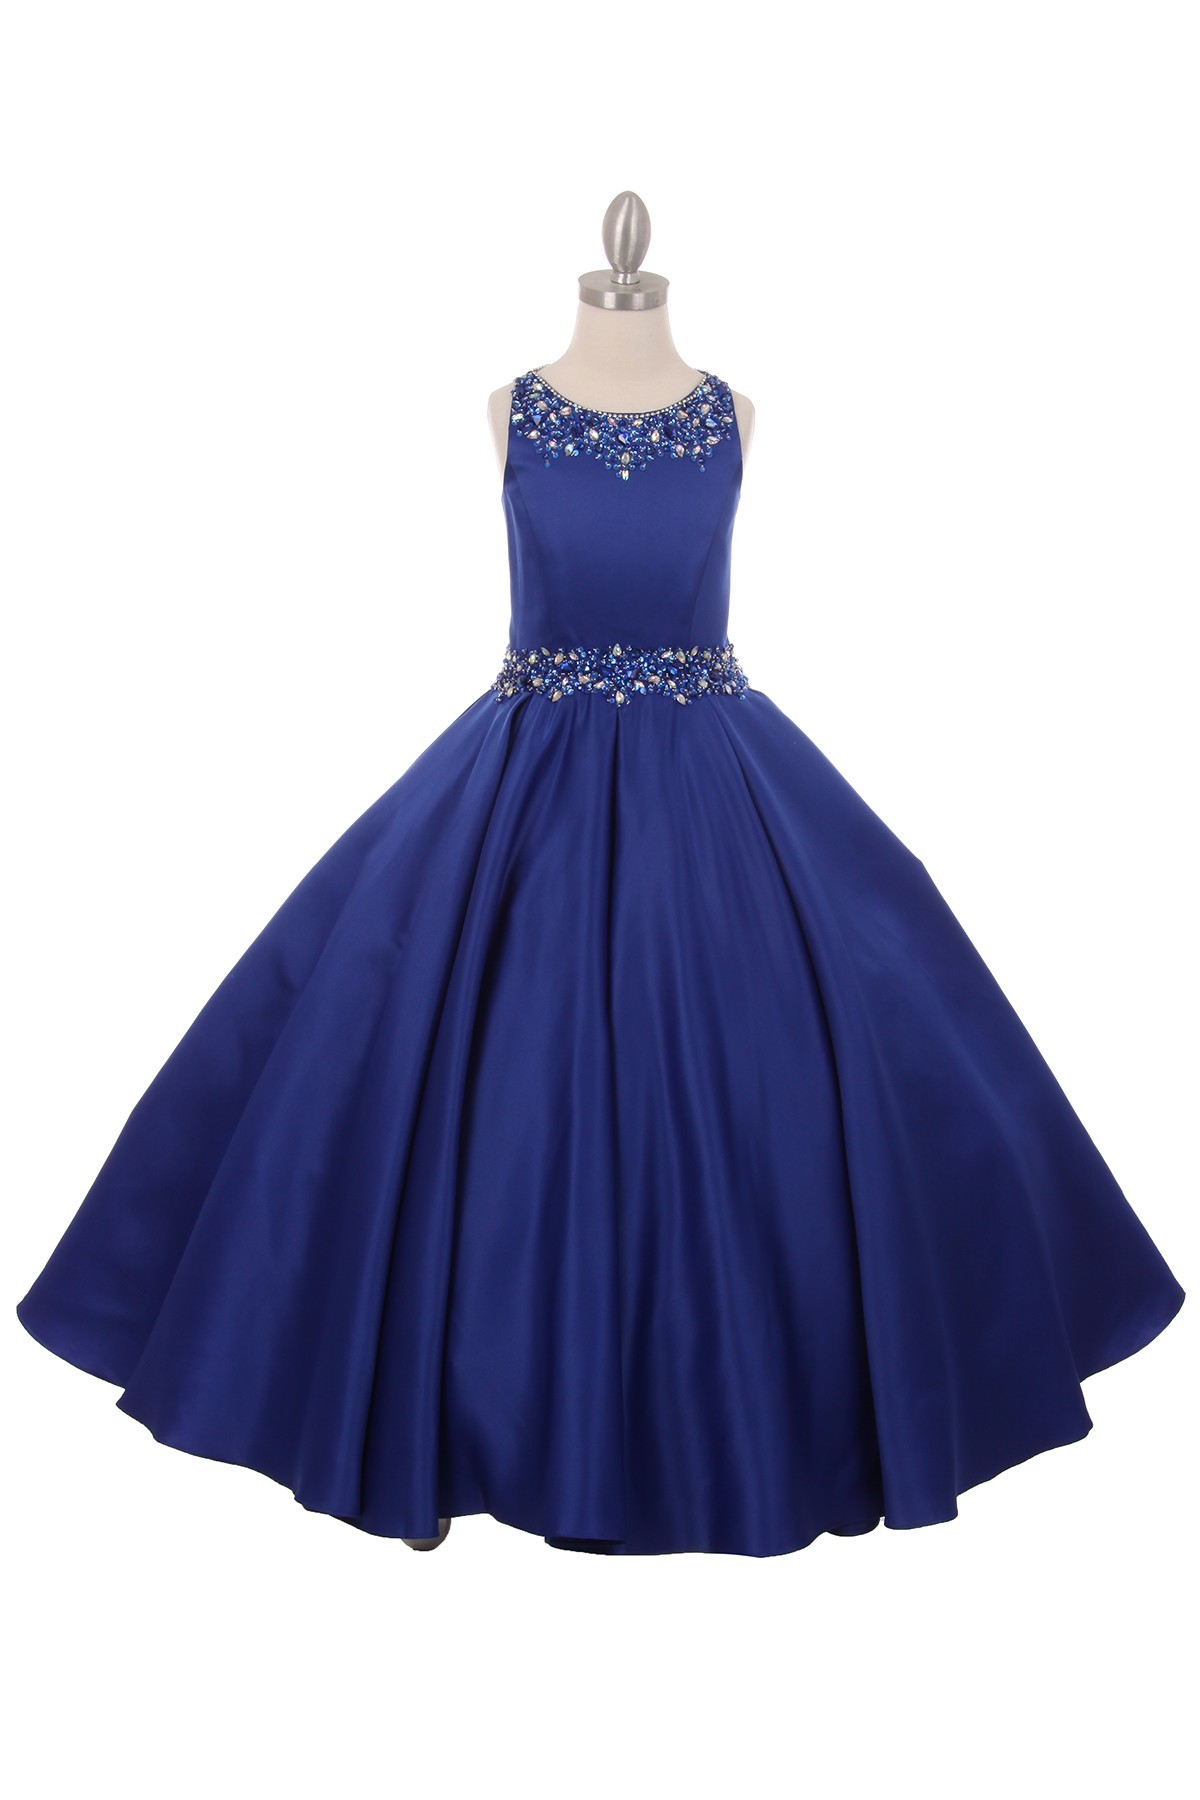 Long Elegant Formal Junior Bridesmaid Dress